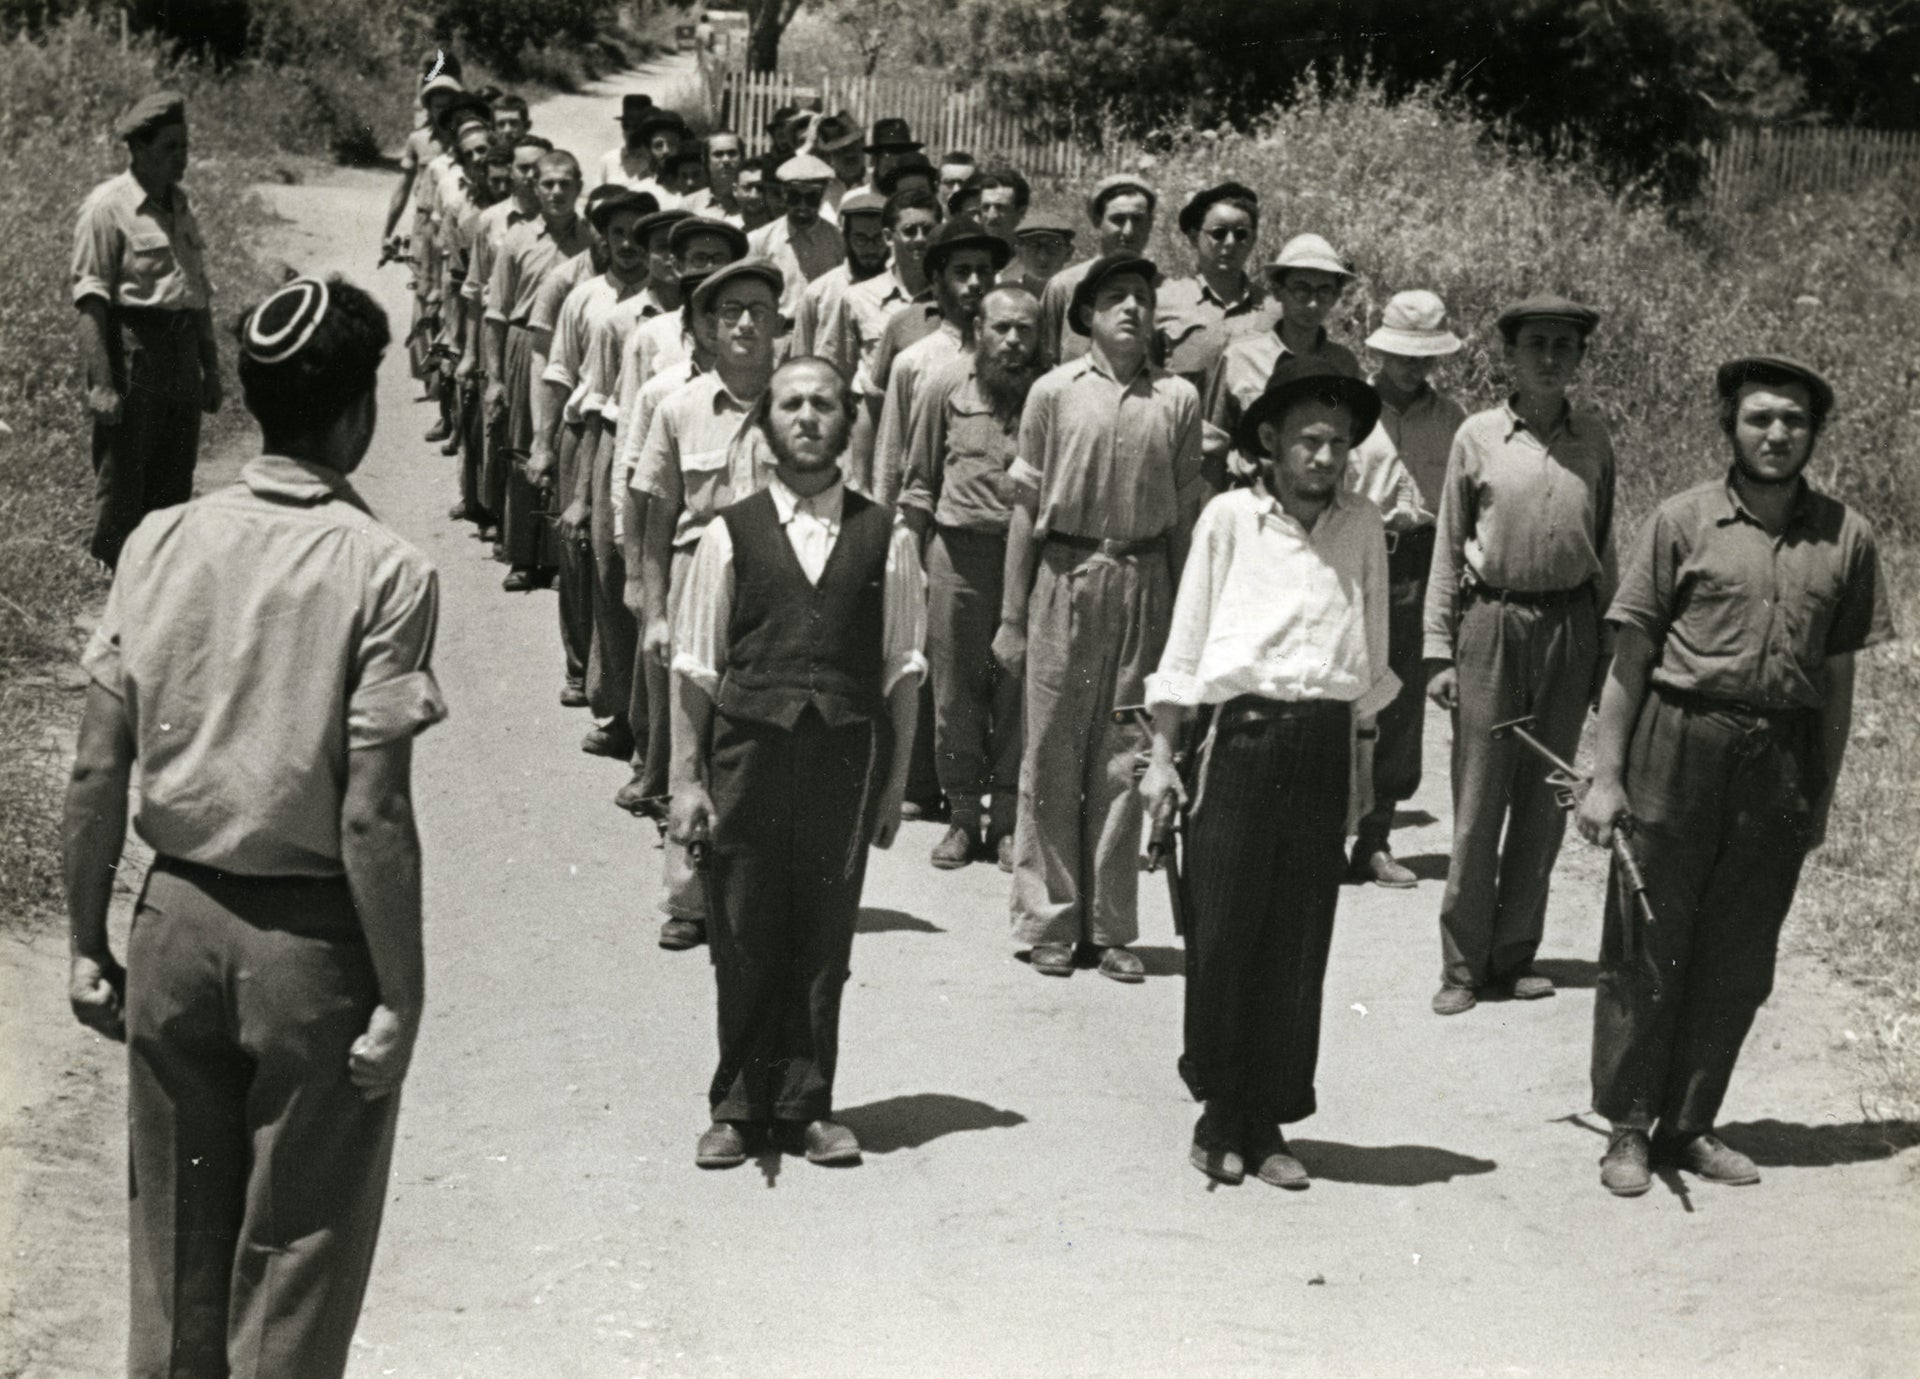 An Orthodox platoon in the Haganah.